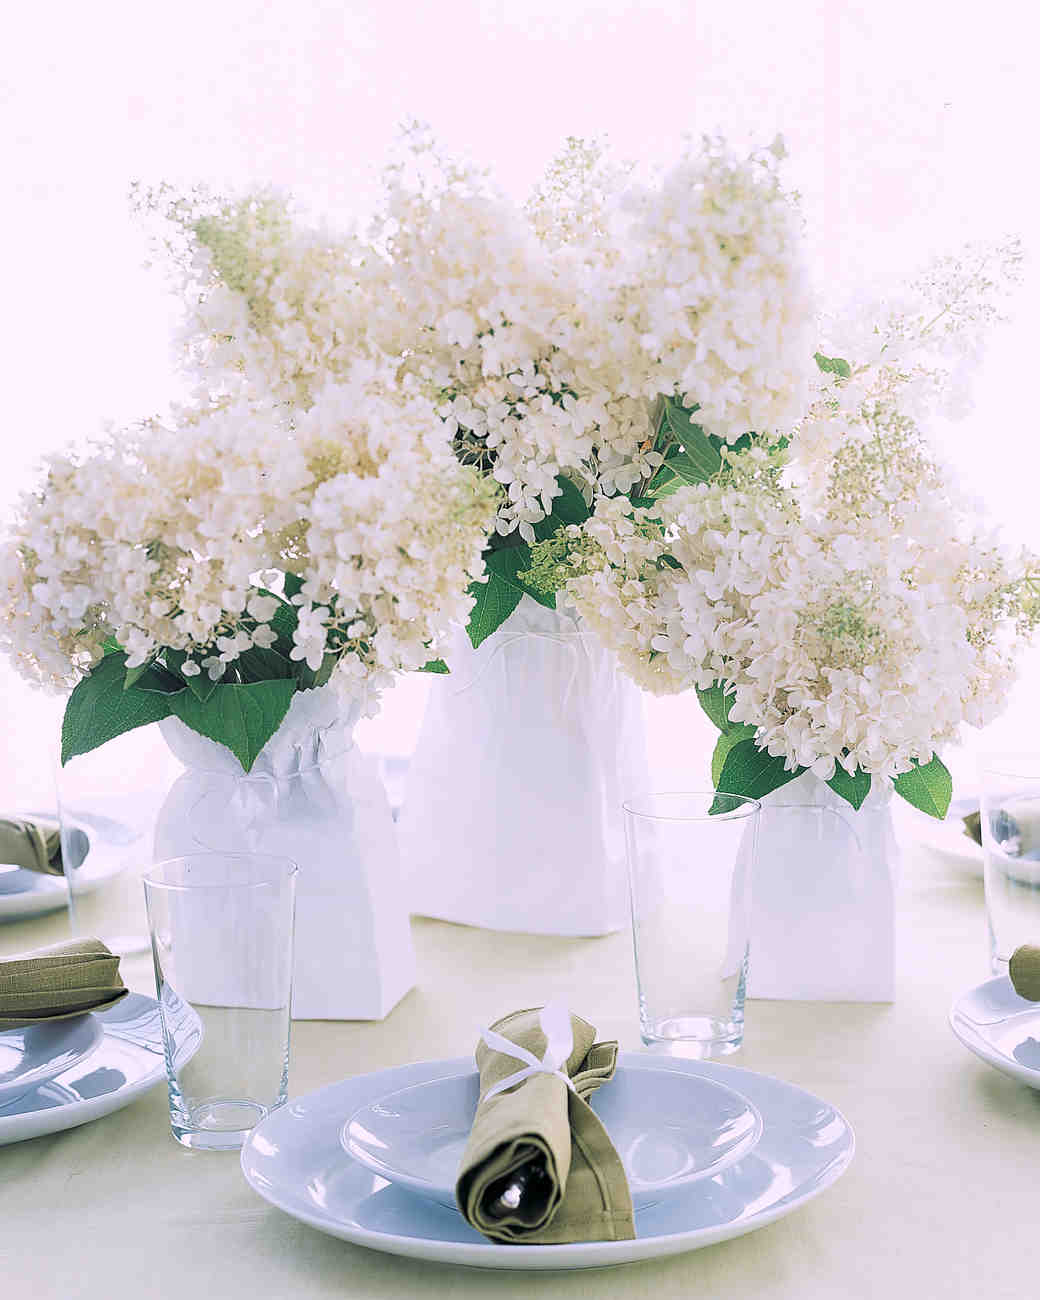 Affordable Wedding Centerpieces That Still Look Elevated | Martha Stewart  Weddings